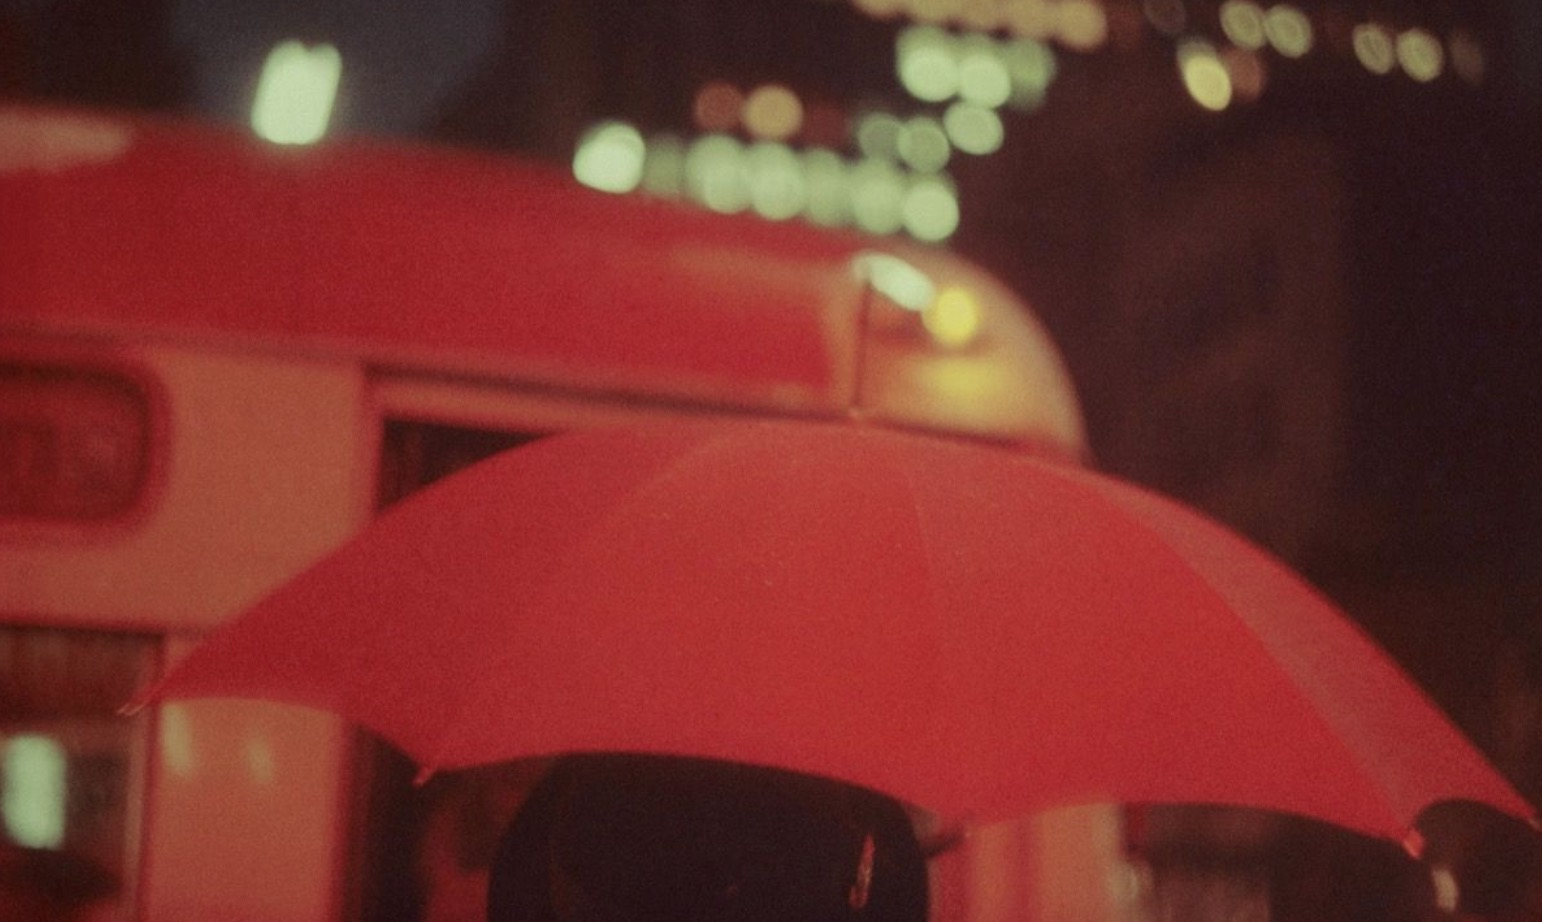 The Artist Who Kept His Dreamy, Colorful Street Photography Secret For Decades